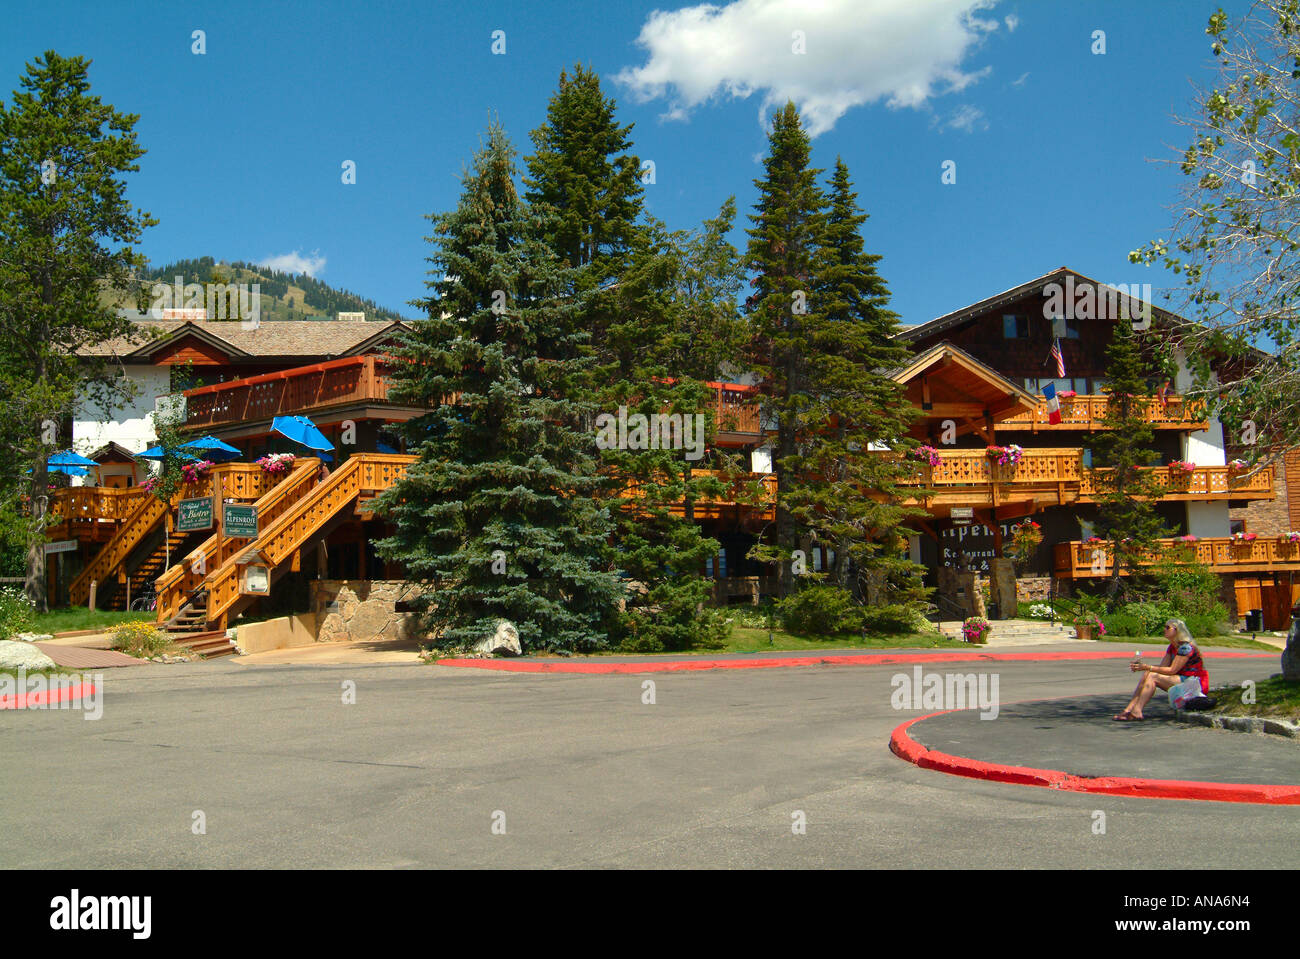 Young Woman Sits Outside The Balconied Chalet Style Alpenhof Hotel in Teton Village near Grand Teton National Park Stock Photo